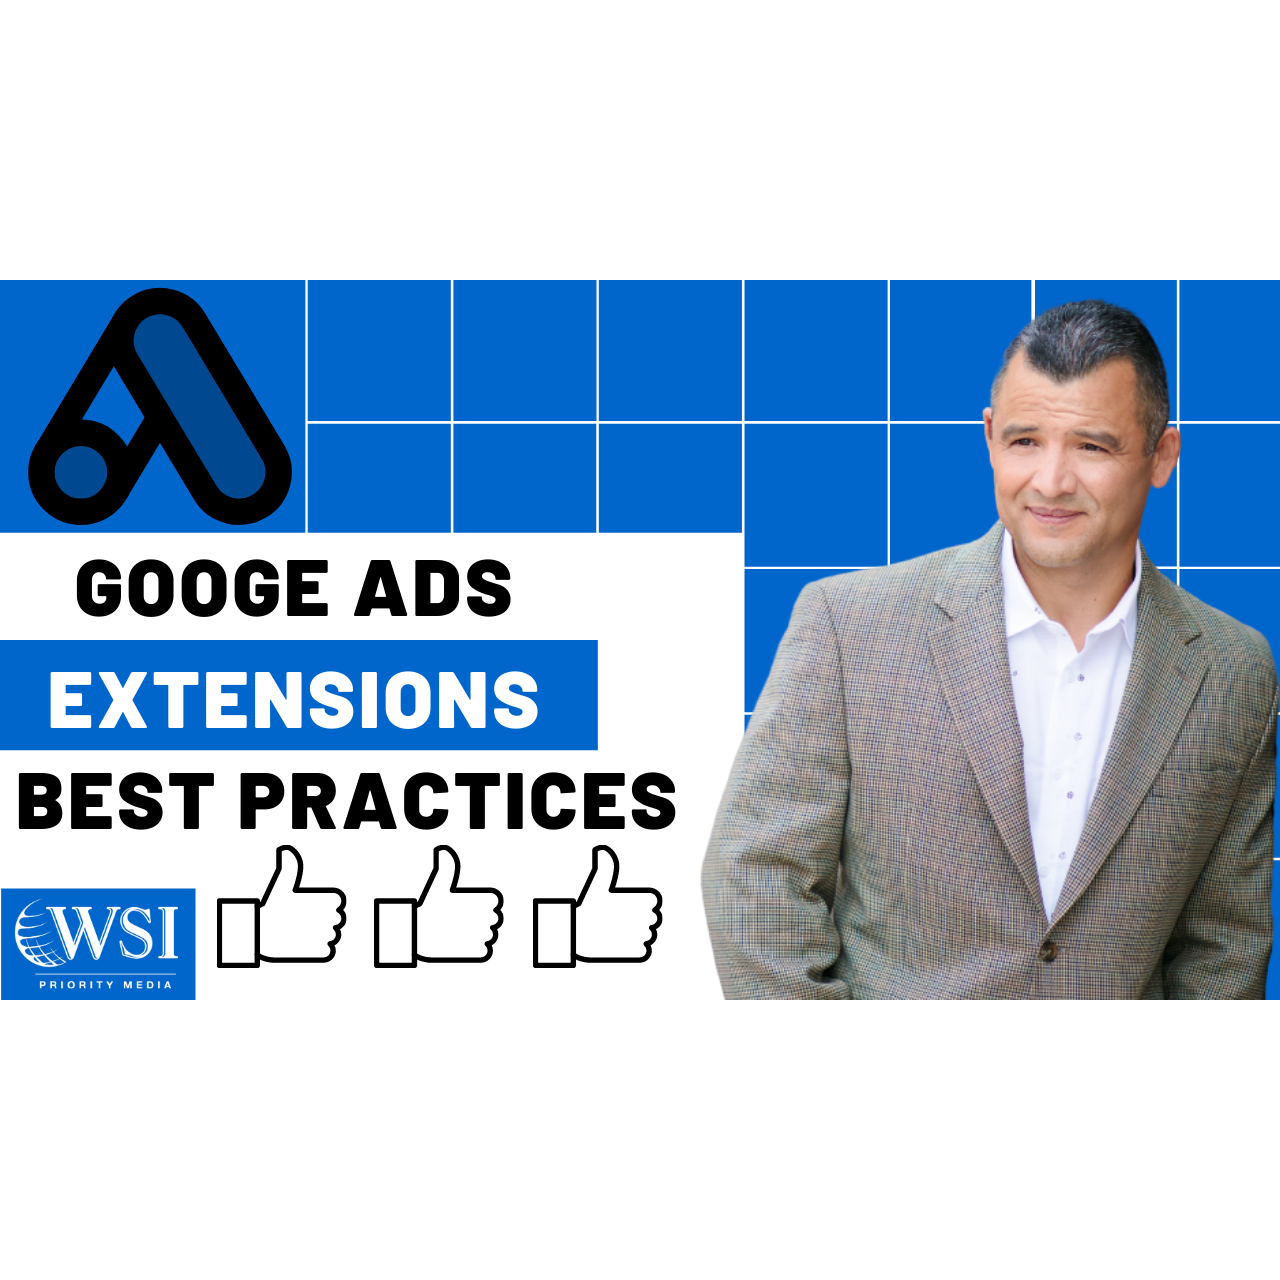 Google Ads Extensions Best Practices